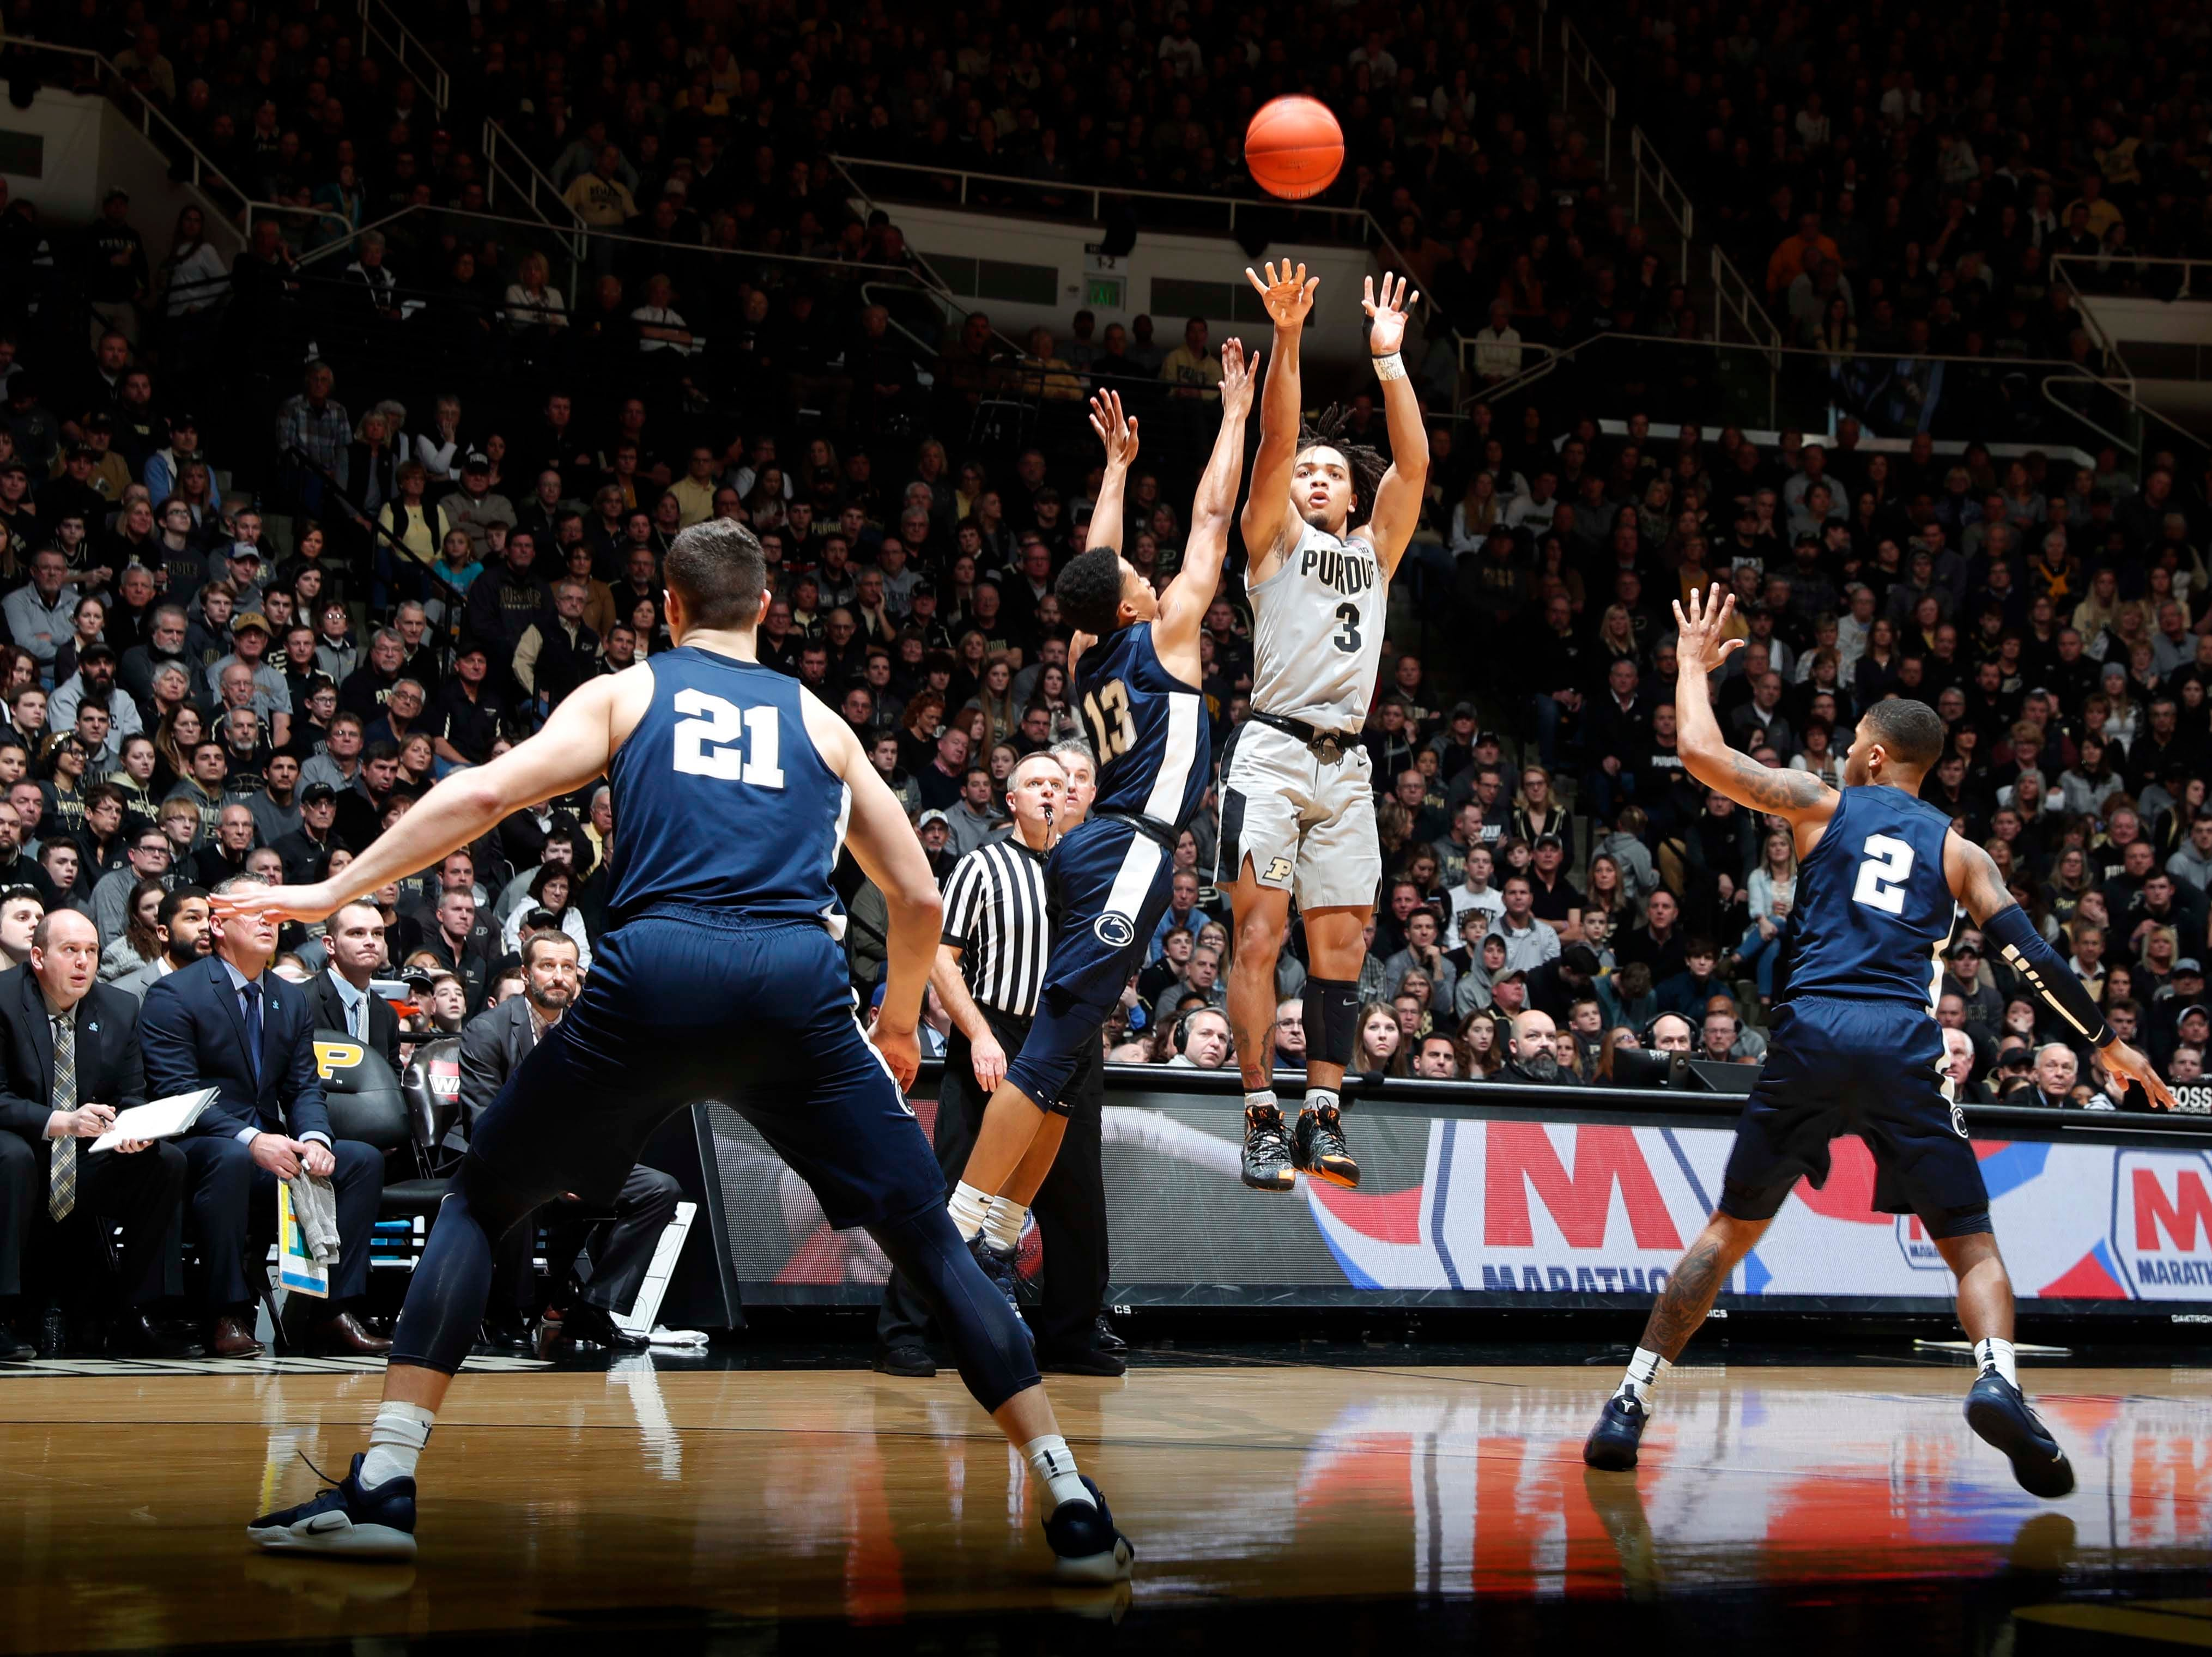 Feb 16, 2019; West Lafayette, IN, USA; Purdue Boilermakers guard Carsen Edwards takes a three point shot against Penn State Nittany Lions Rasir Bolton (13) during the second half at Mackey Arena. Mandatory Credit: Brian Spurlock-USA TODAY Sports